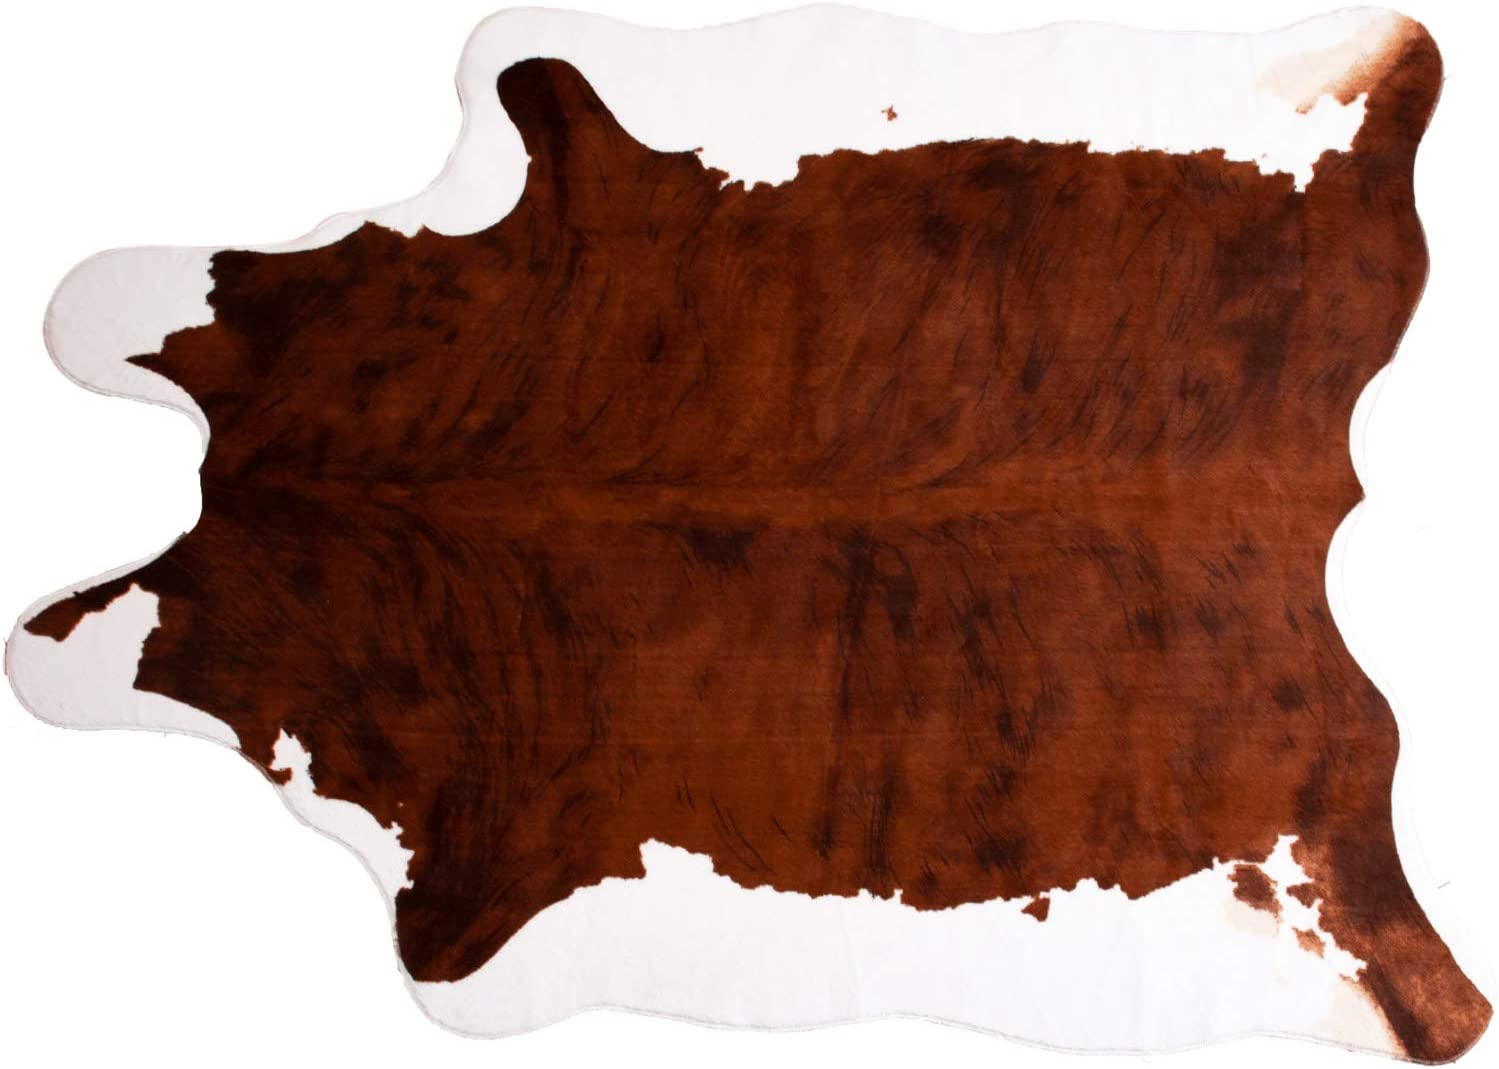 MustMat Faux Cowhide Rug Brown and White Cow Print Rug Cowboy Decor for Living Room Approx 4.5'x6.2'